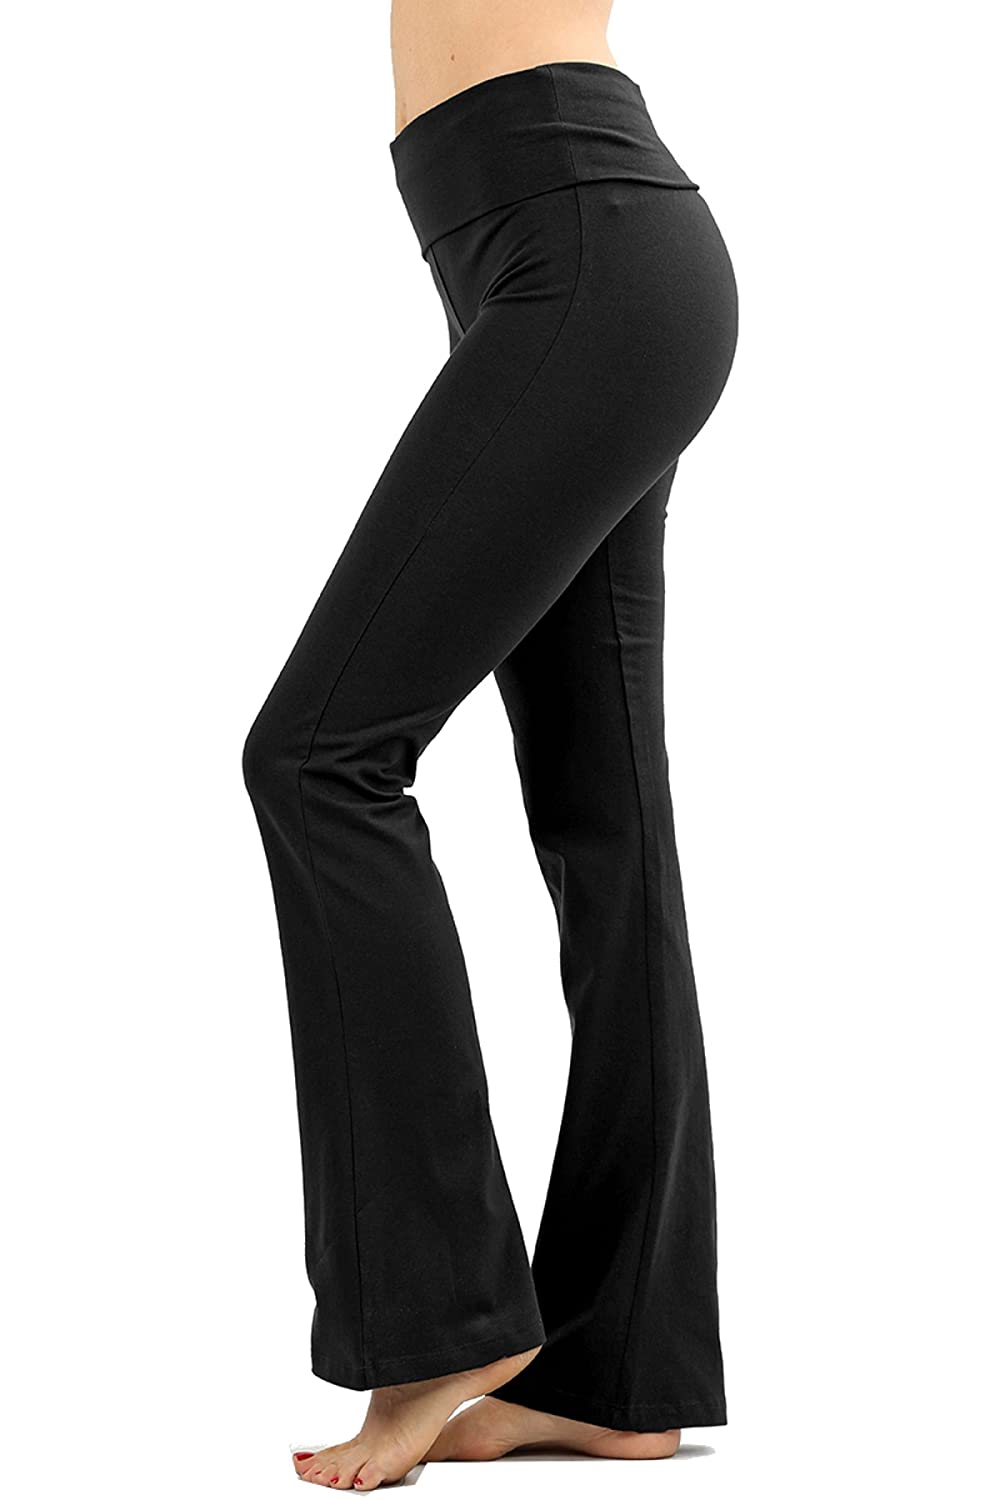 ff35dc114c0d2a Top 10 wholesale Large Yoga Pants - Chinabrands.com